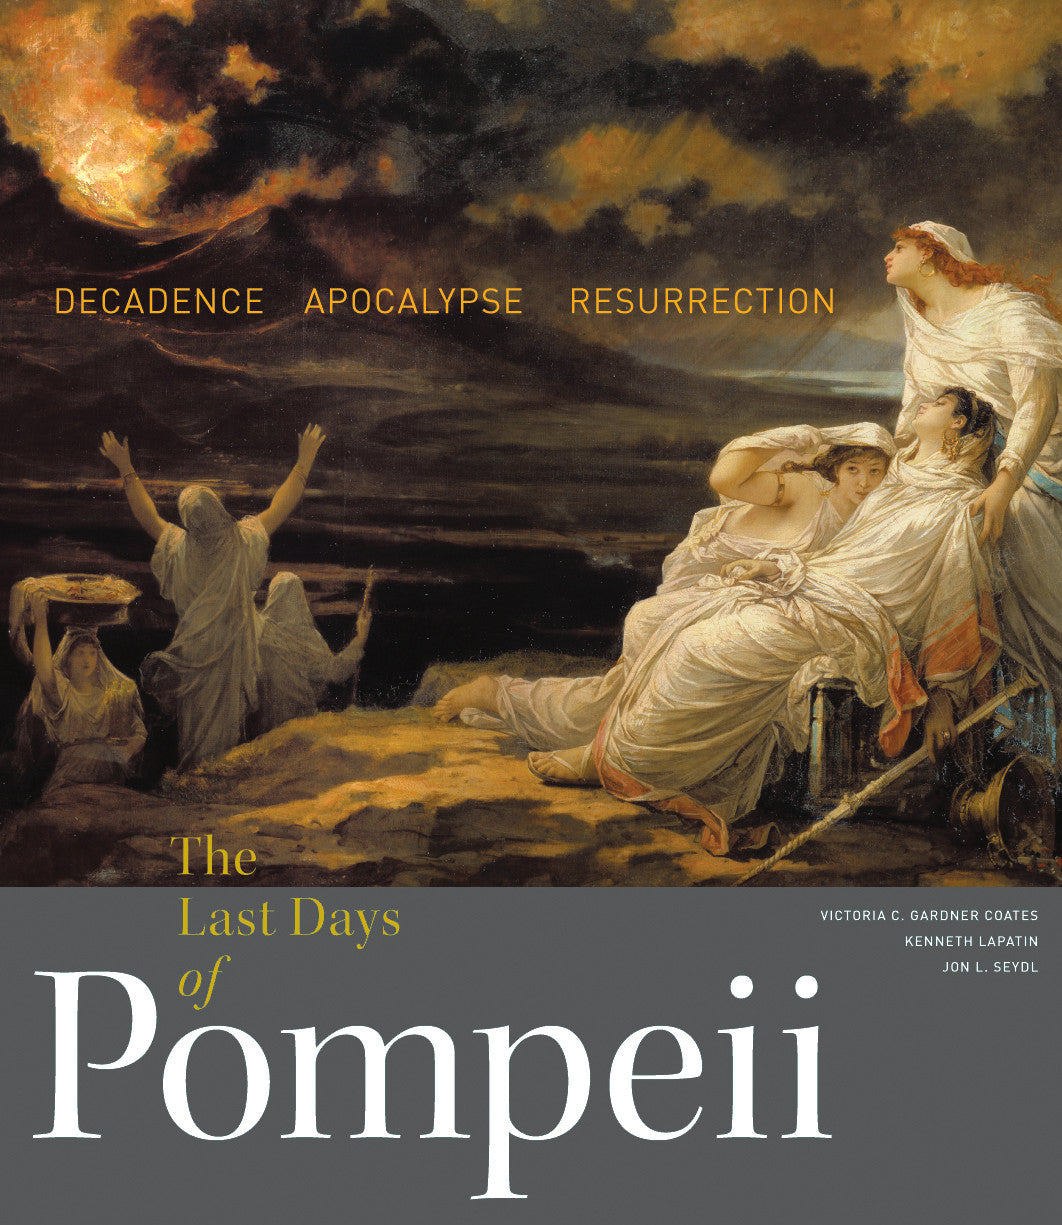 The Last Days of Pompeii: Decadence, Apocalypse, Resurrection | Getty Store